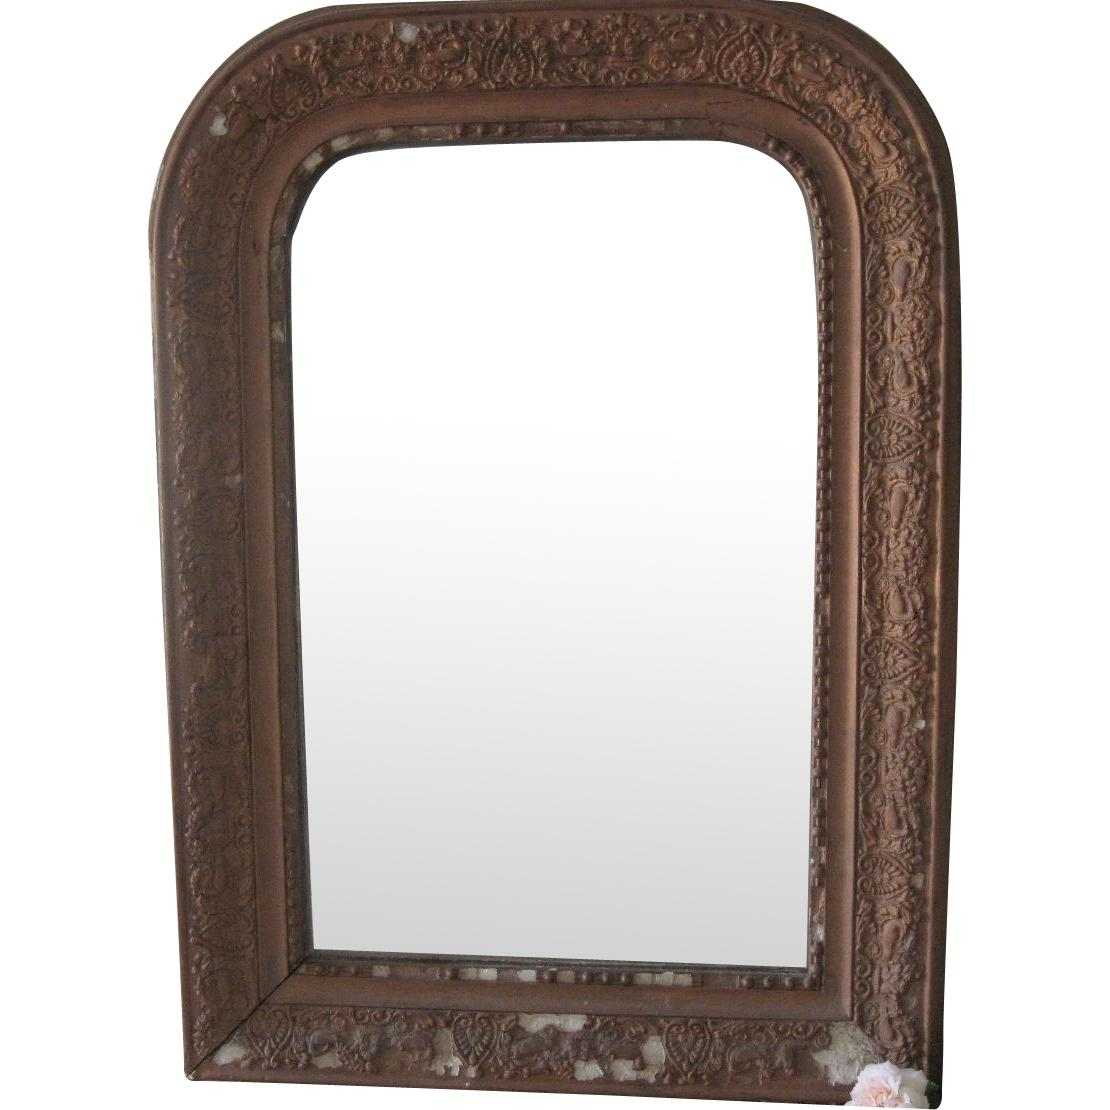 Antique French Mantle Mirror With Decorative Gold Detailing From With Regard To Mantle Mirror (Image 2 of 20)